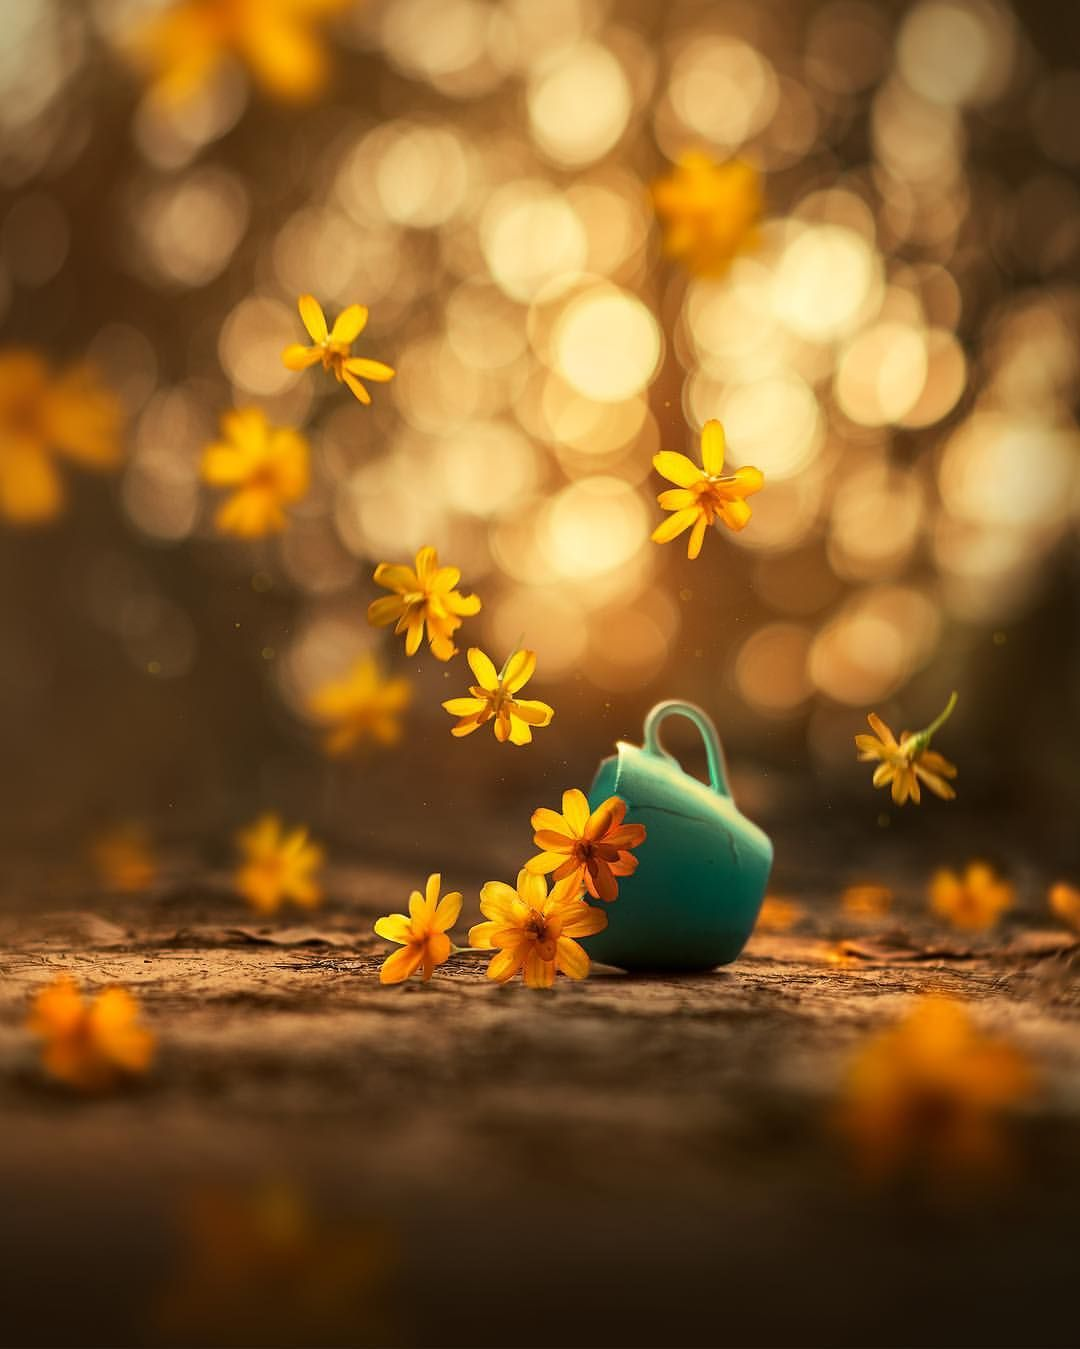 Whimsical And Dreamlike Still Life Photography By Ashraful Arefin Miniature Photography Still Life Photography Cute Photography